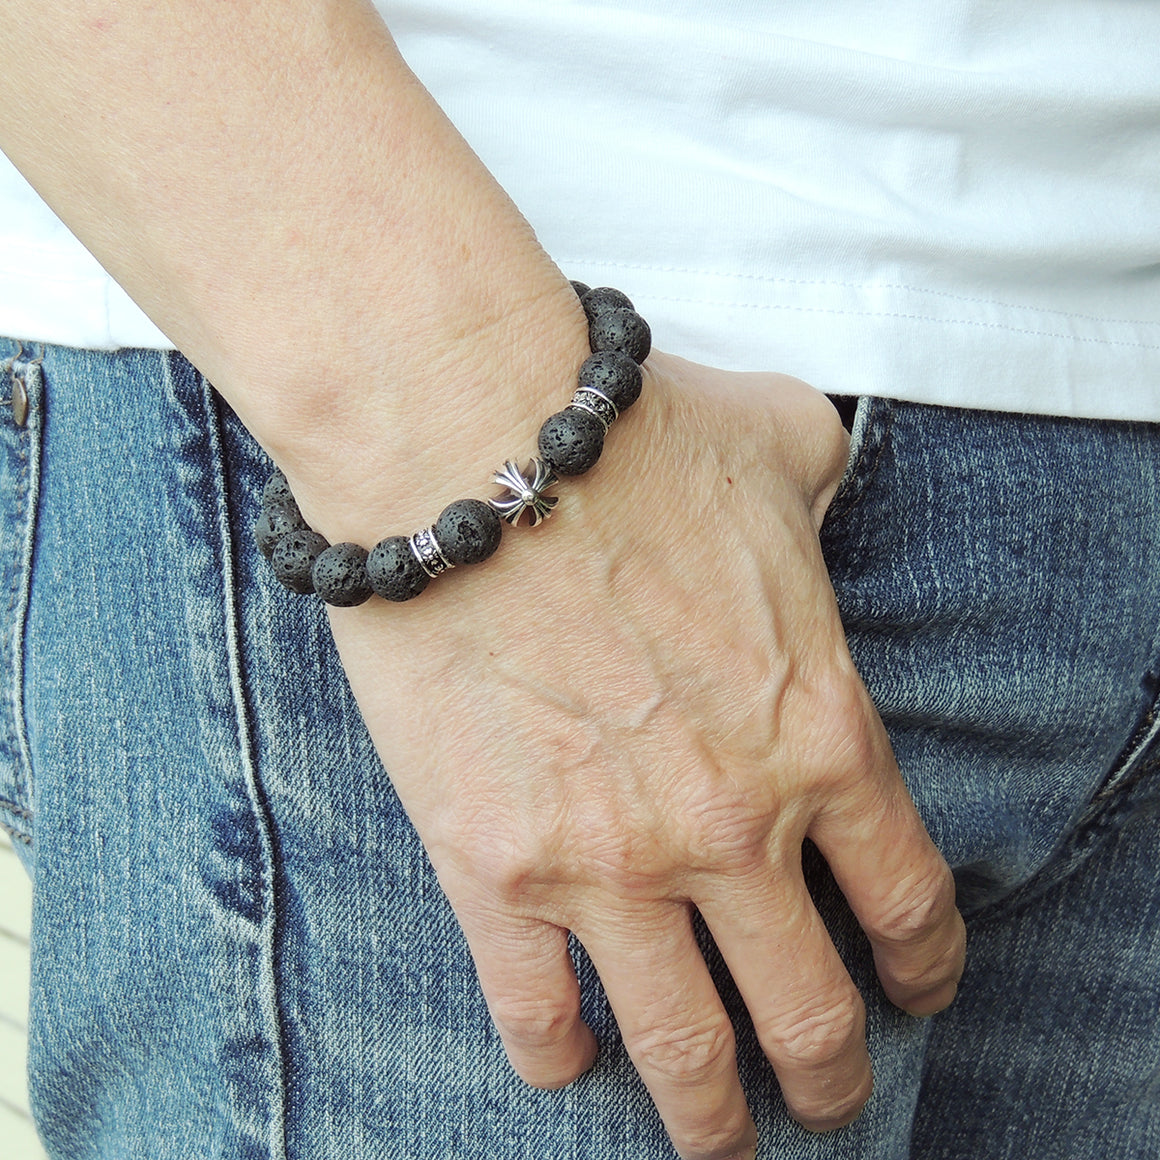 Handmade Cross Pattern Design Braided Bracelet Healing Lava Rock 10mm Stones for Grounding Conscious Meditation & Prayer with Genuine S925 Sterling Silver Beads - BR1513